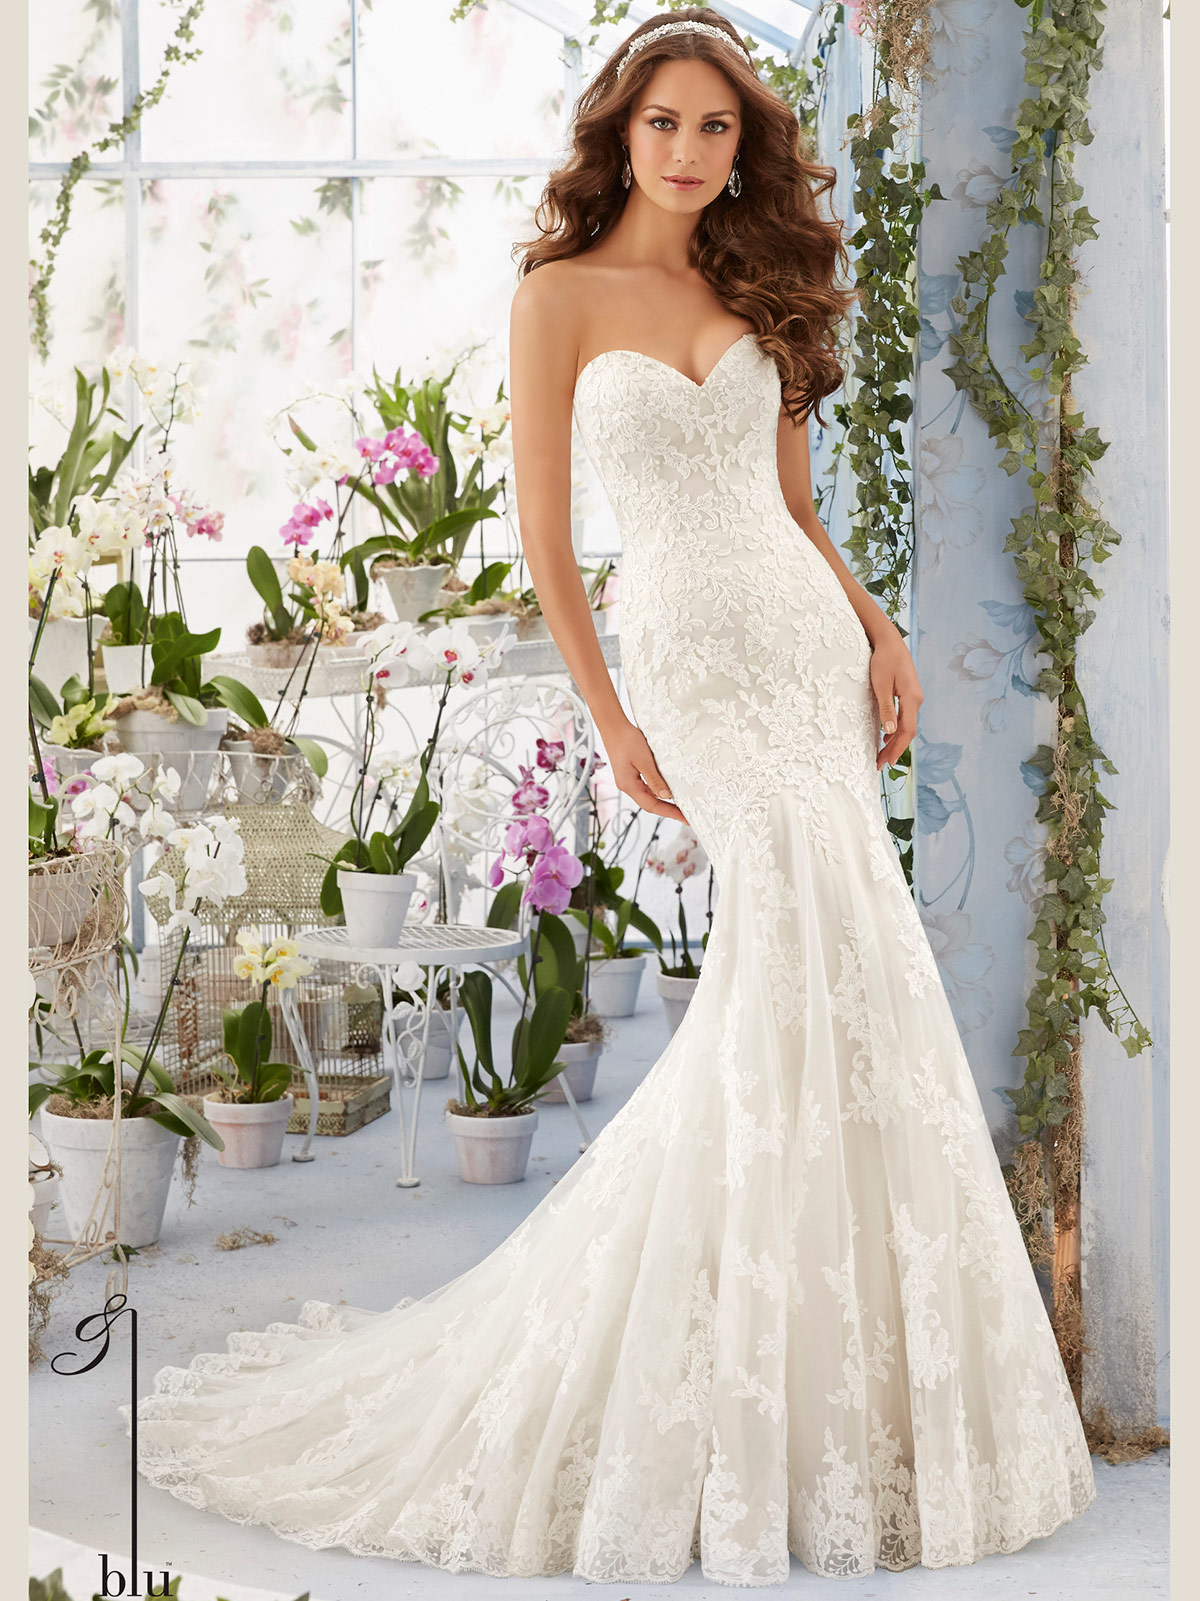 Sheath Weding Gown 010 - Sheath Weding Gown